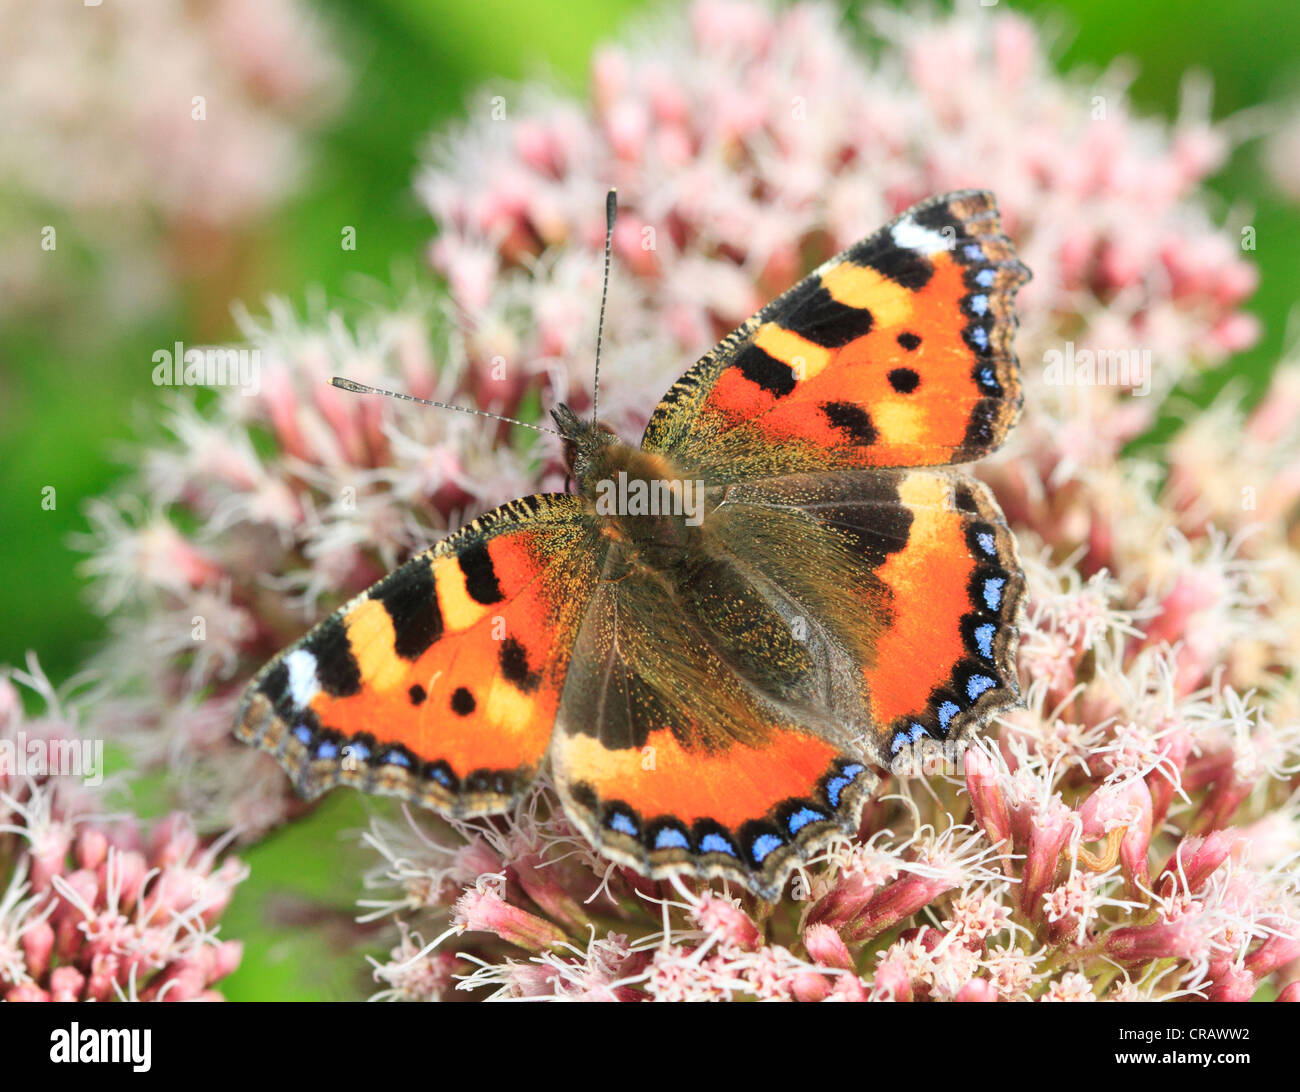 Small Tortoiseshell Butterfly, Wyre Forest, Worcestershire; England; Europe - Stock Image